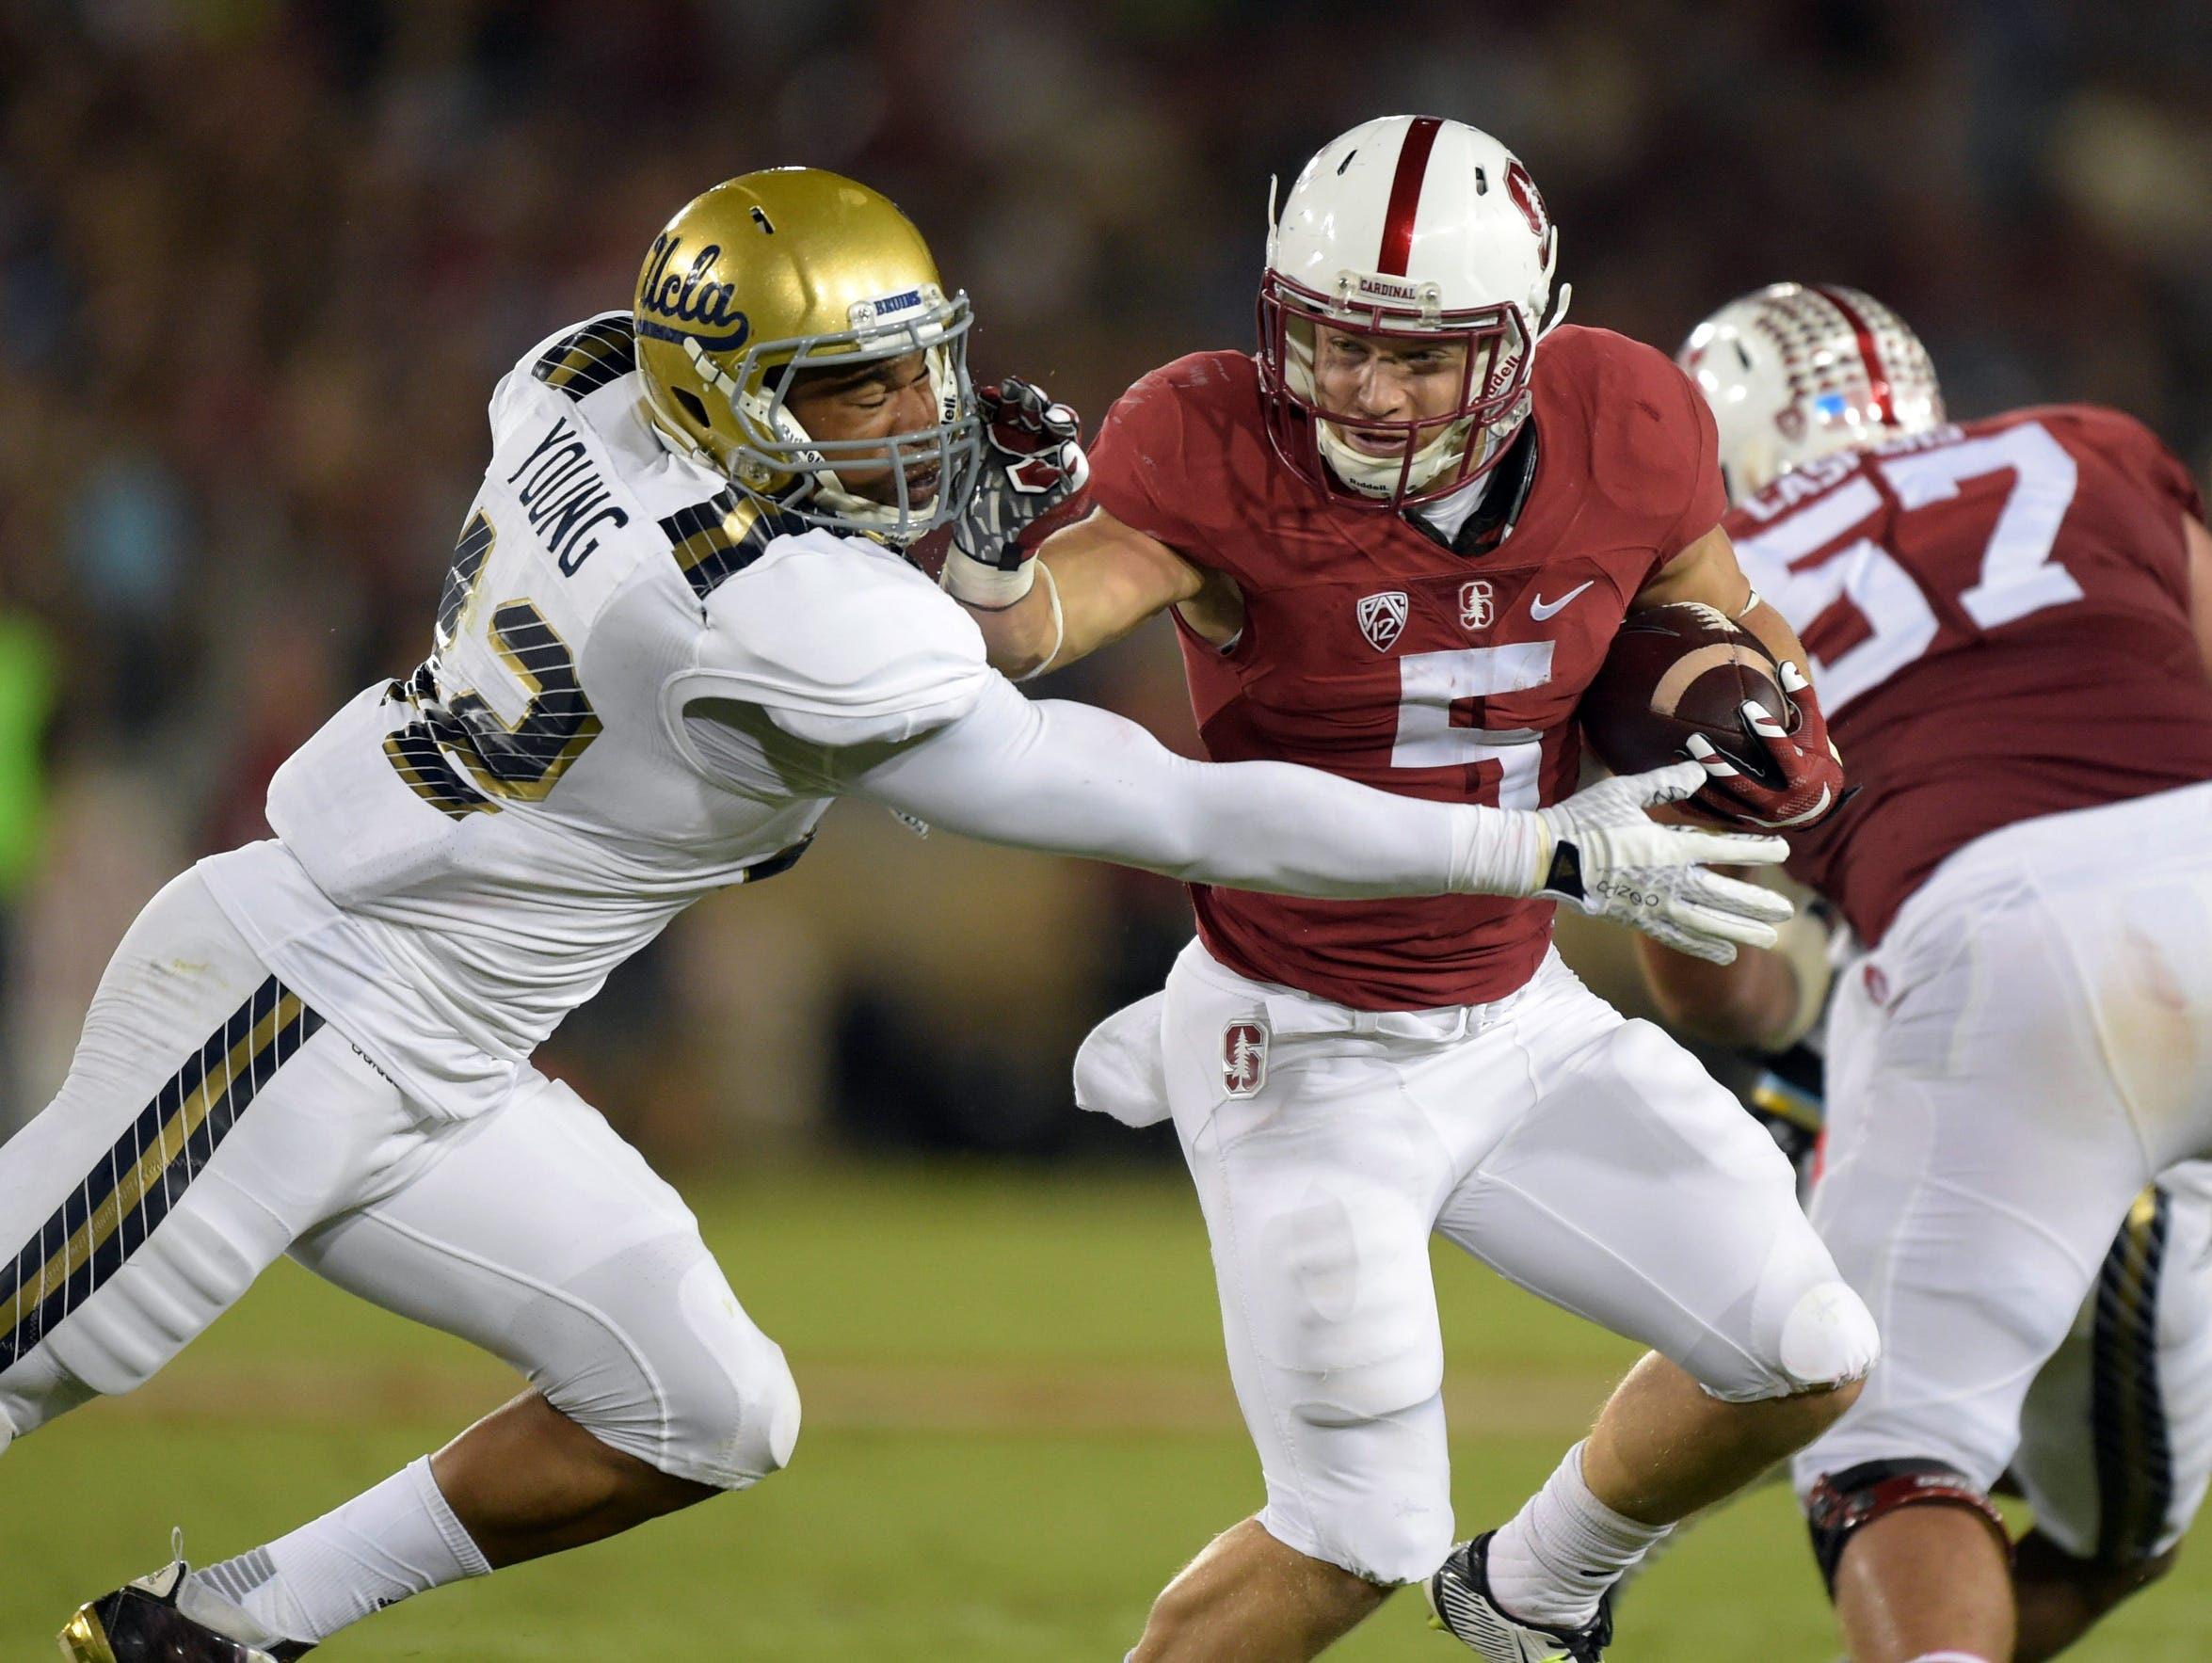 McCaffrey carries a load of muscle on his 6-foot, 200-pound